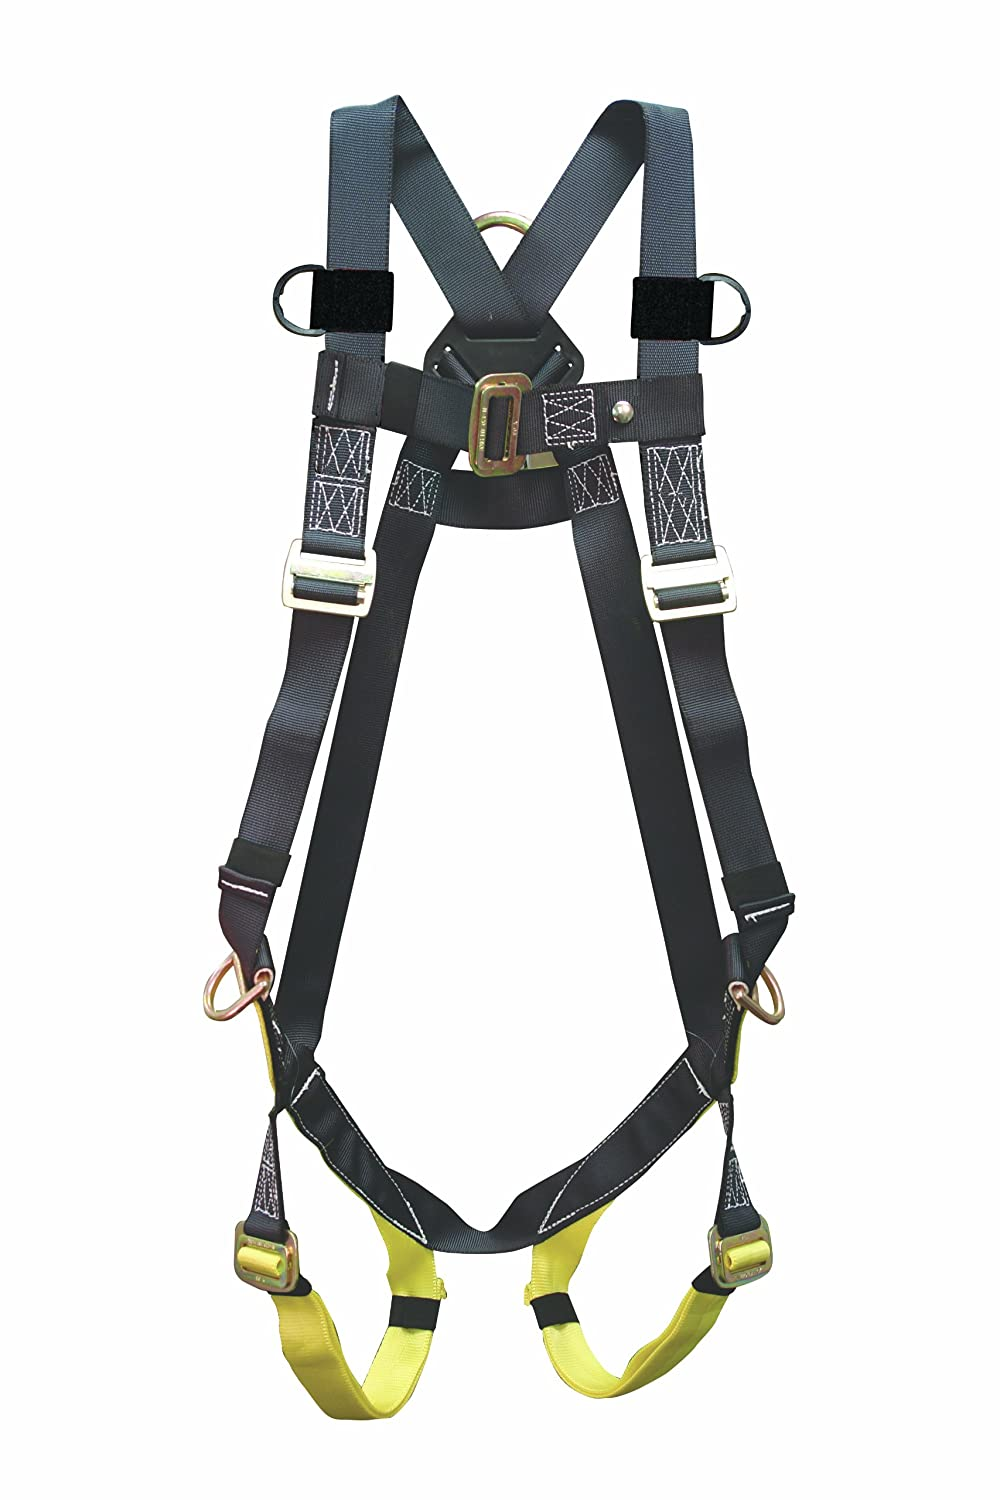 Elk River 67631 Polyester//Nylon PeregrineRAS Platinum Series 6 D-Ring Harness with Removable Adjustable Seat Small Inc